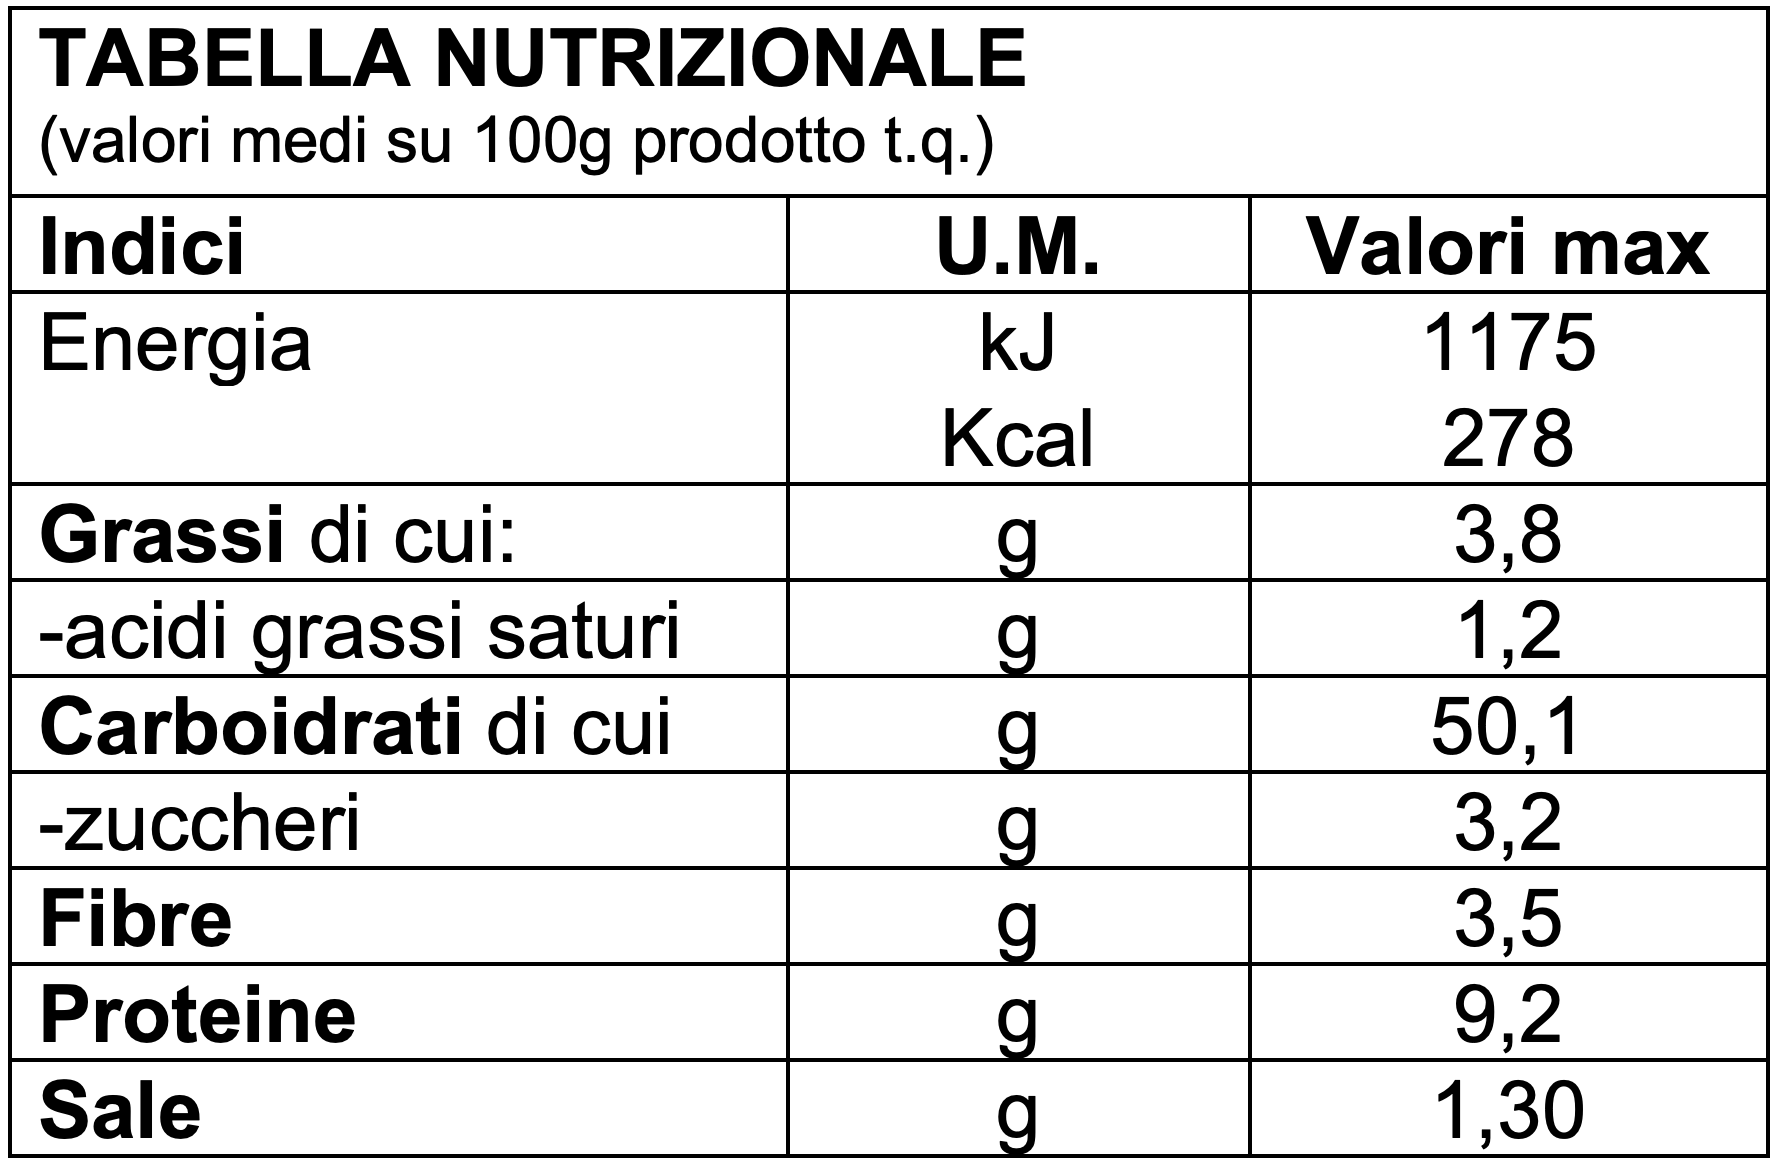 https://www.panem.it/wp-content/uploads/2019/12/tabella-nutrizionale-grano-duro-tradizionale-panem.png